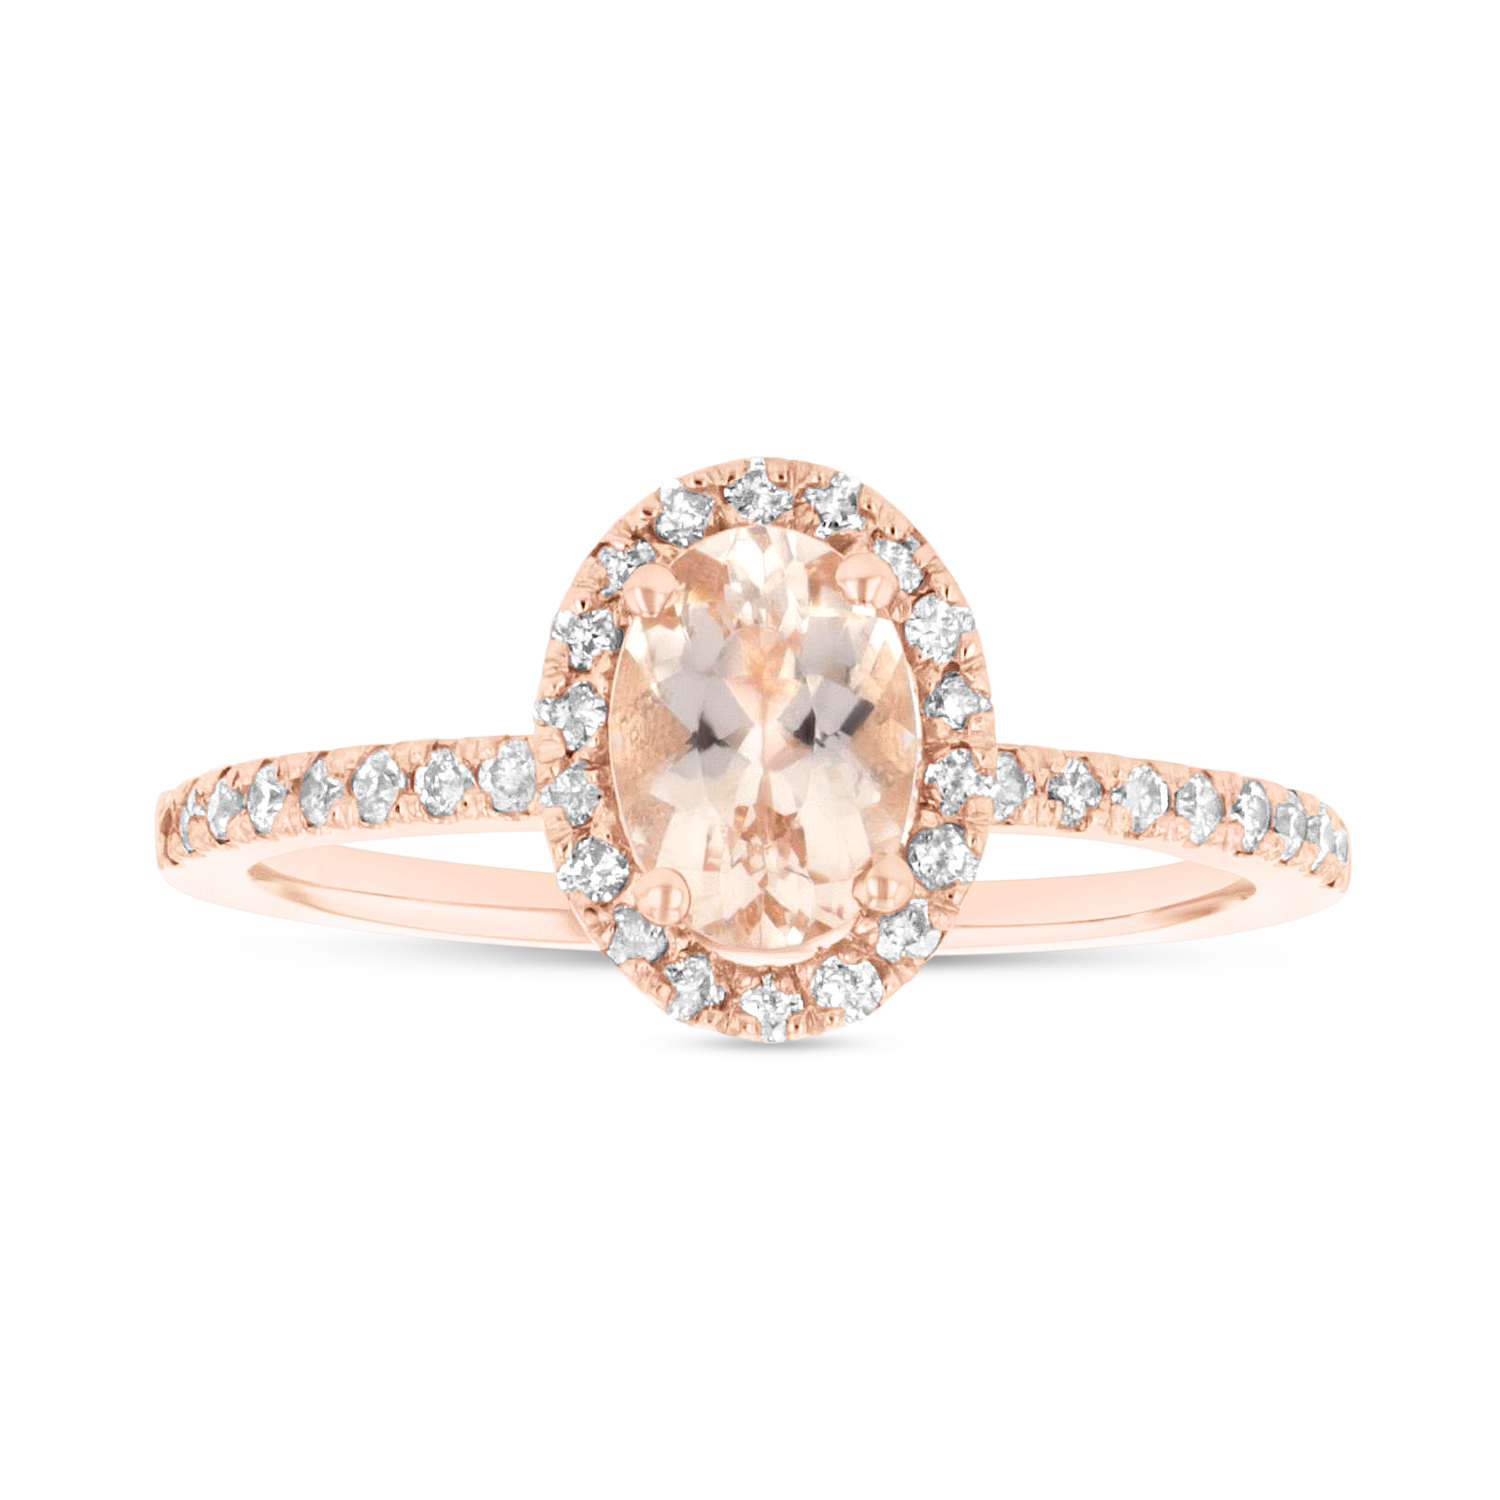 View 7X5 mm Oval Morganite and Diamond Ring in 14k Rose Gold